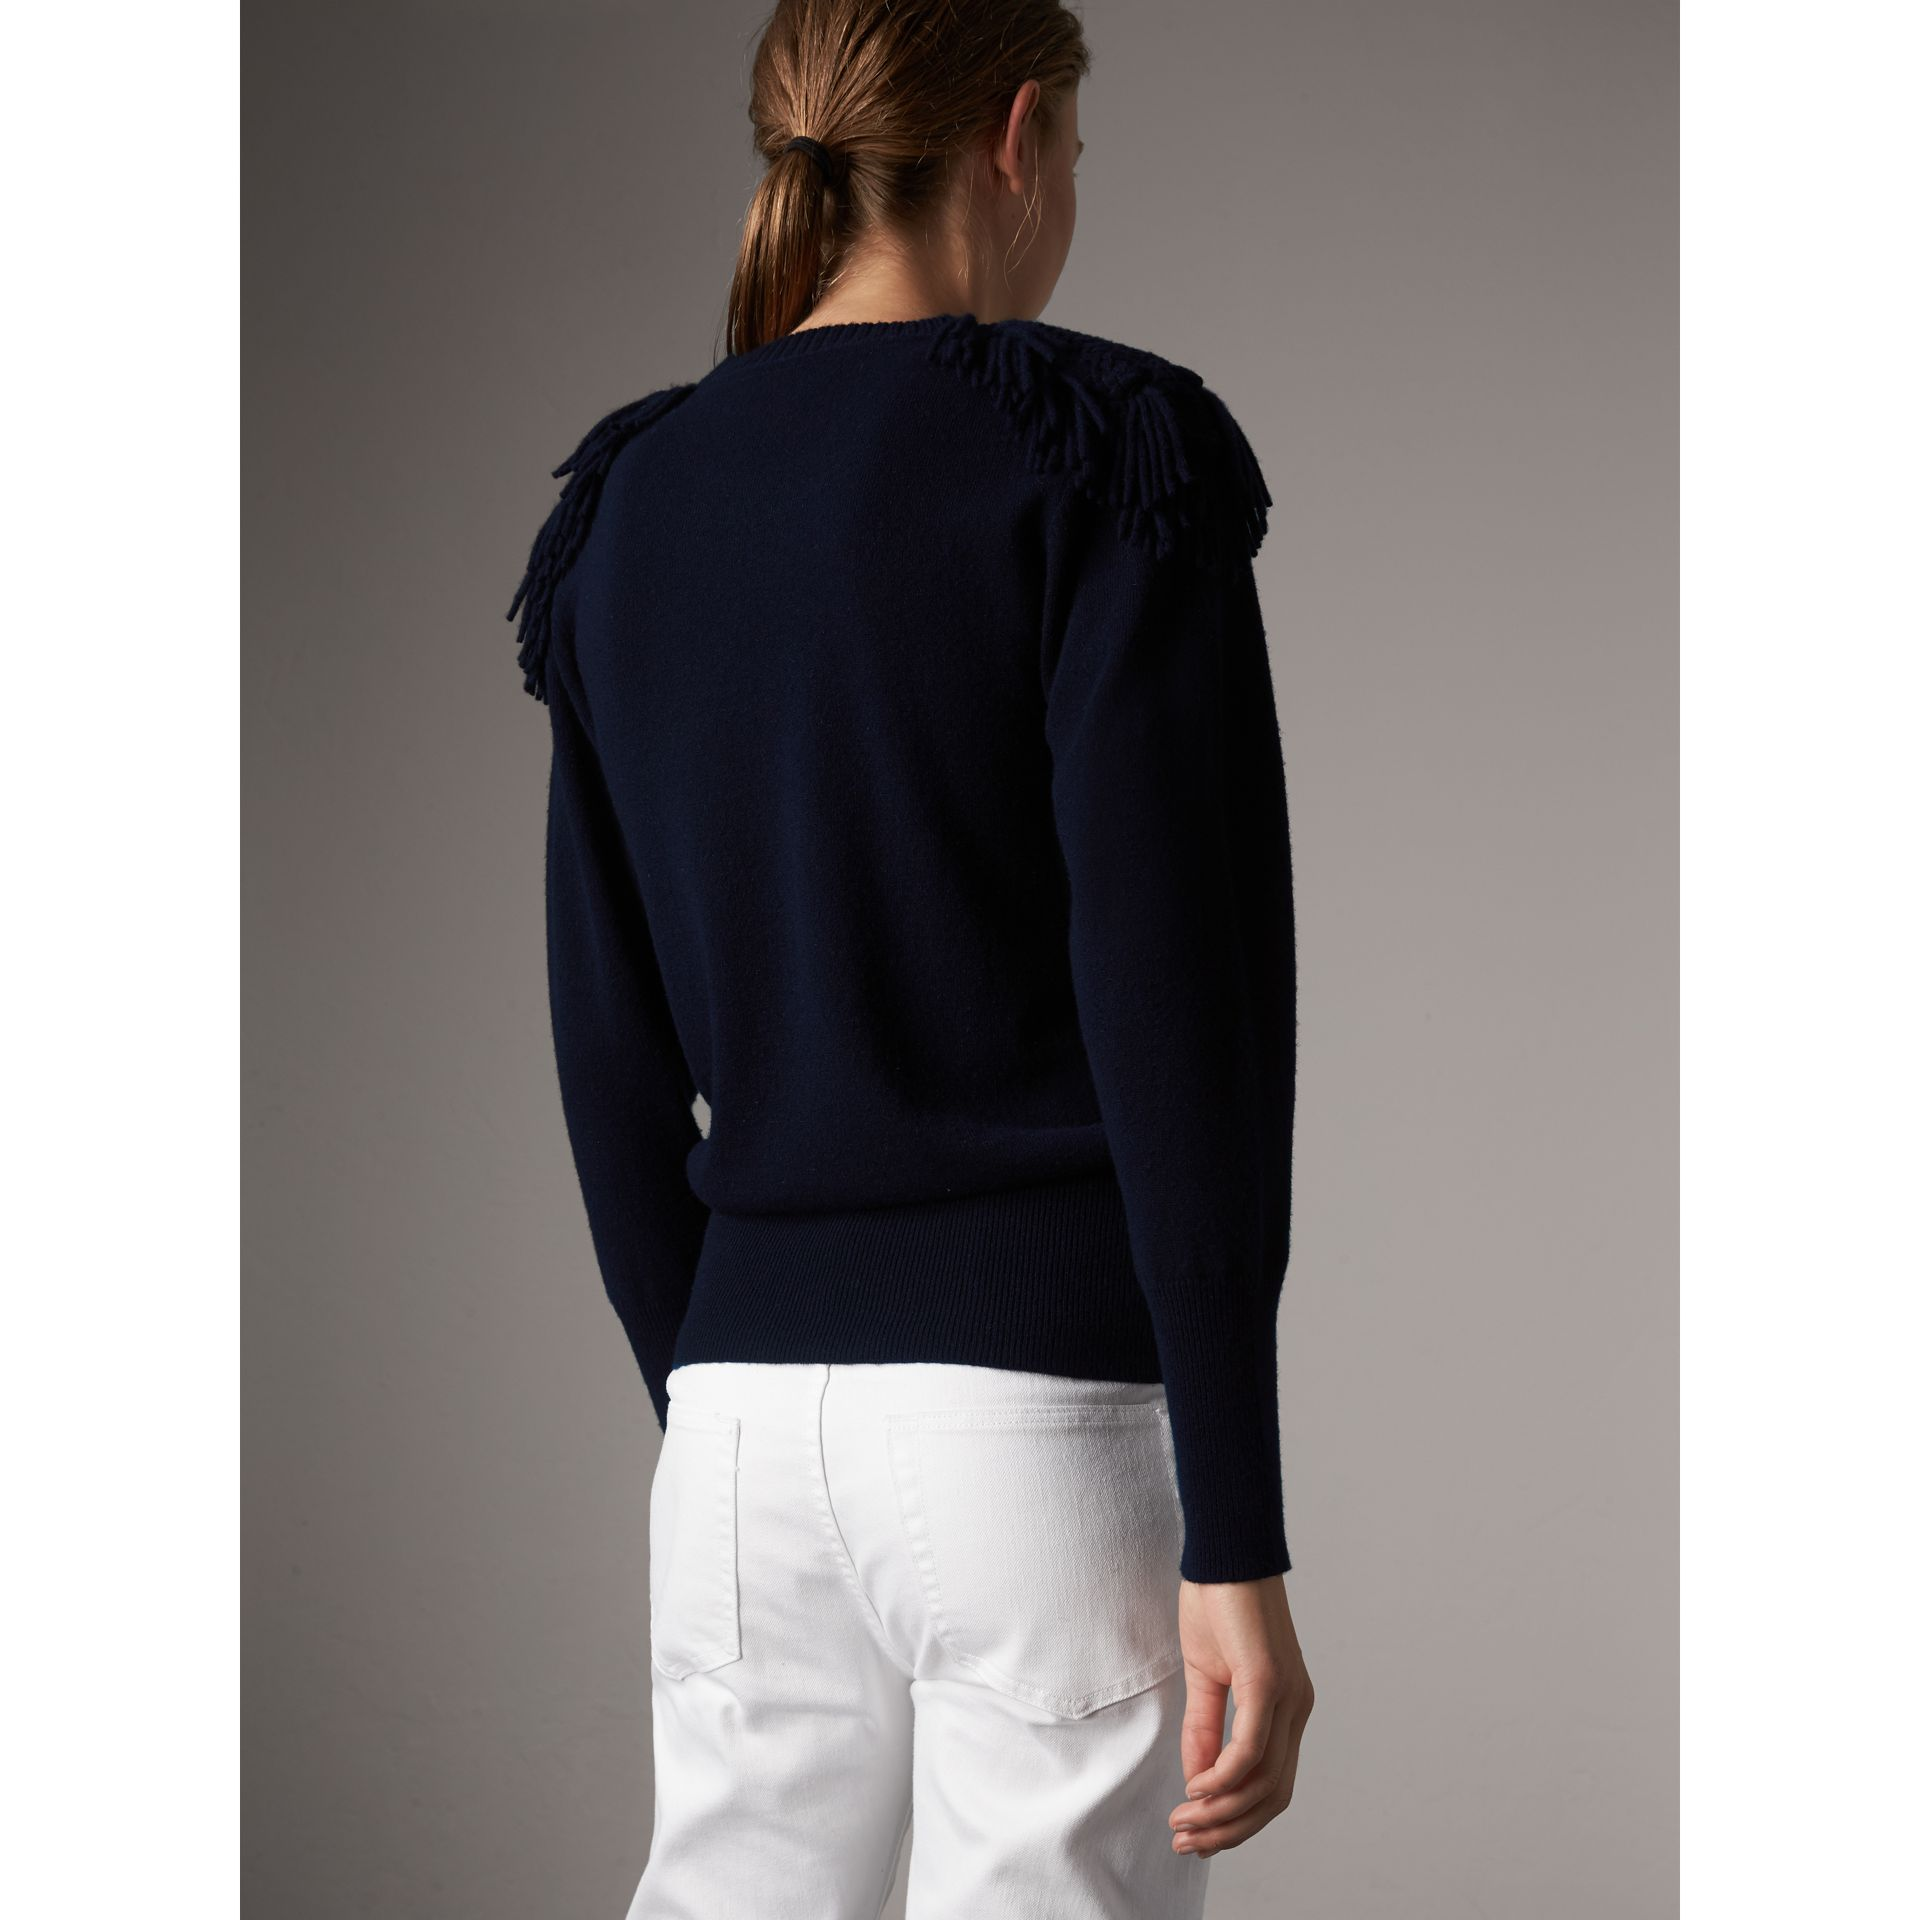 Military Braid Detail Wool Cashmere Sweater in Navy - Women | Burberry - gallery image 3